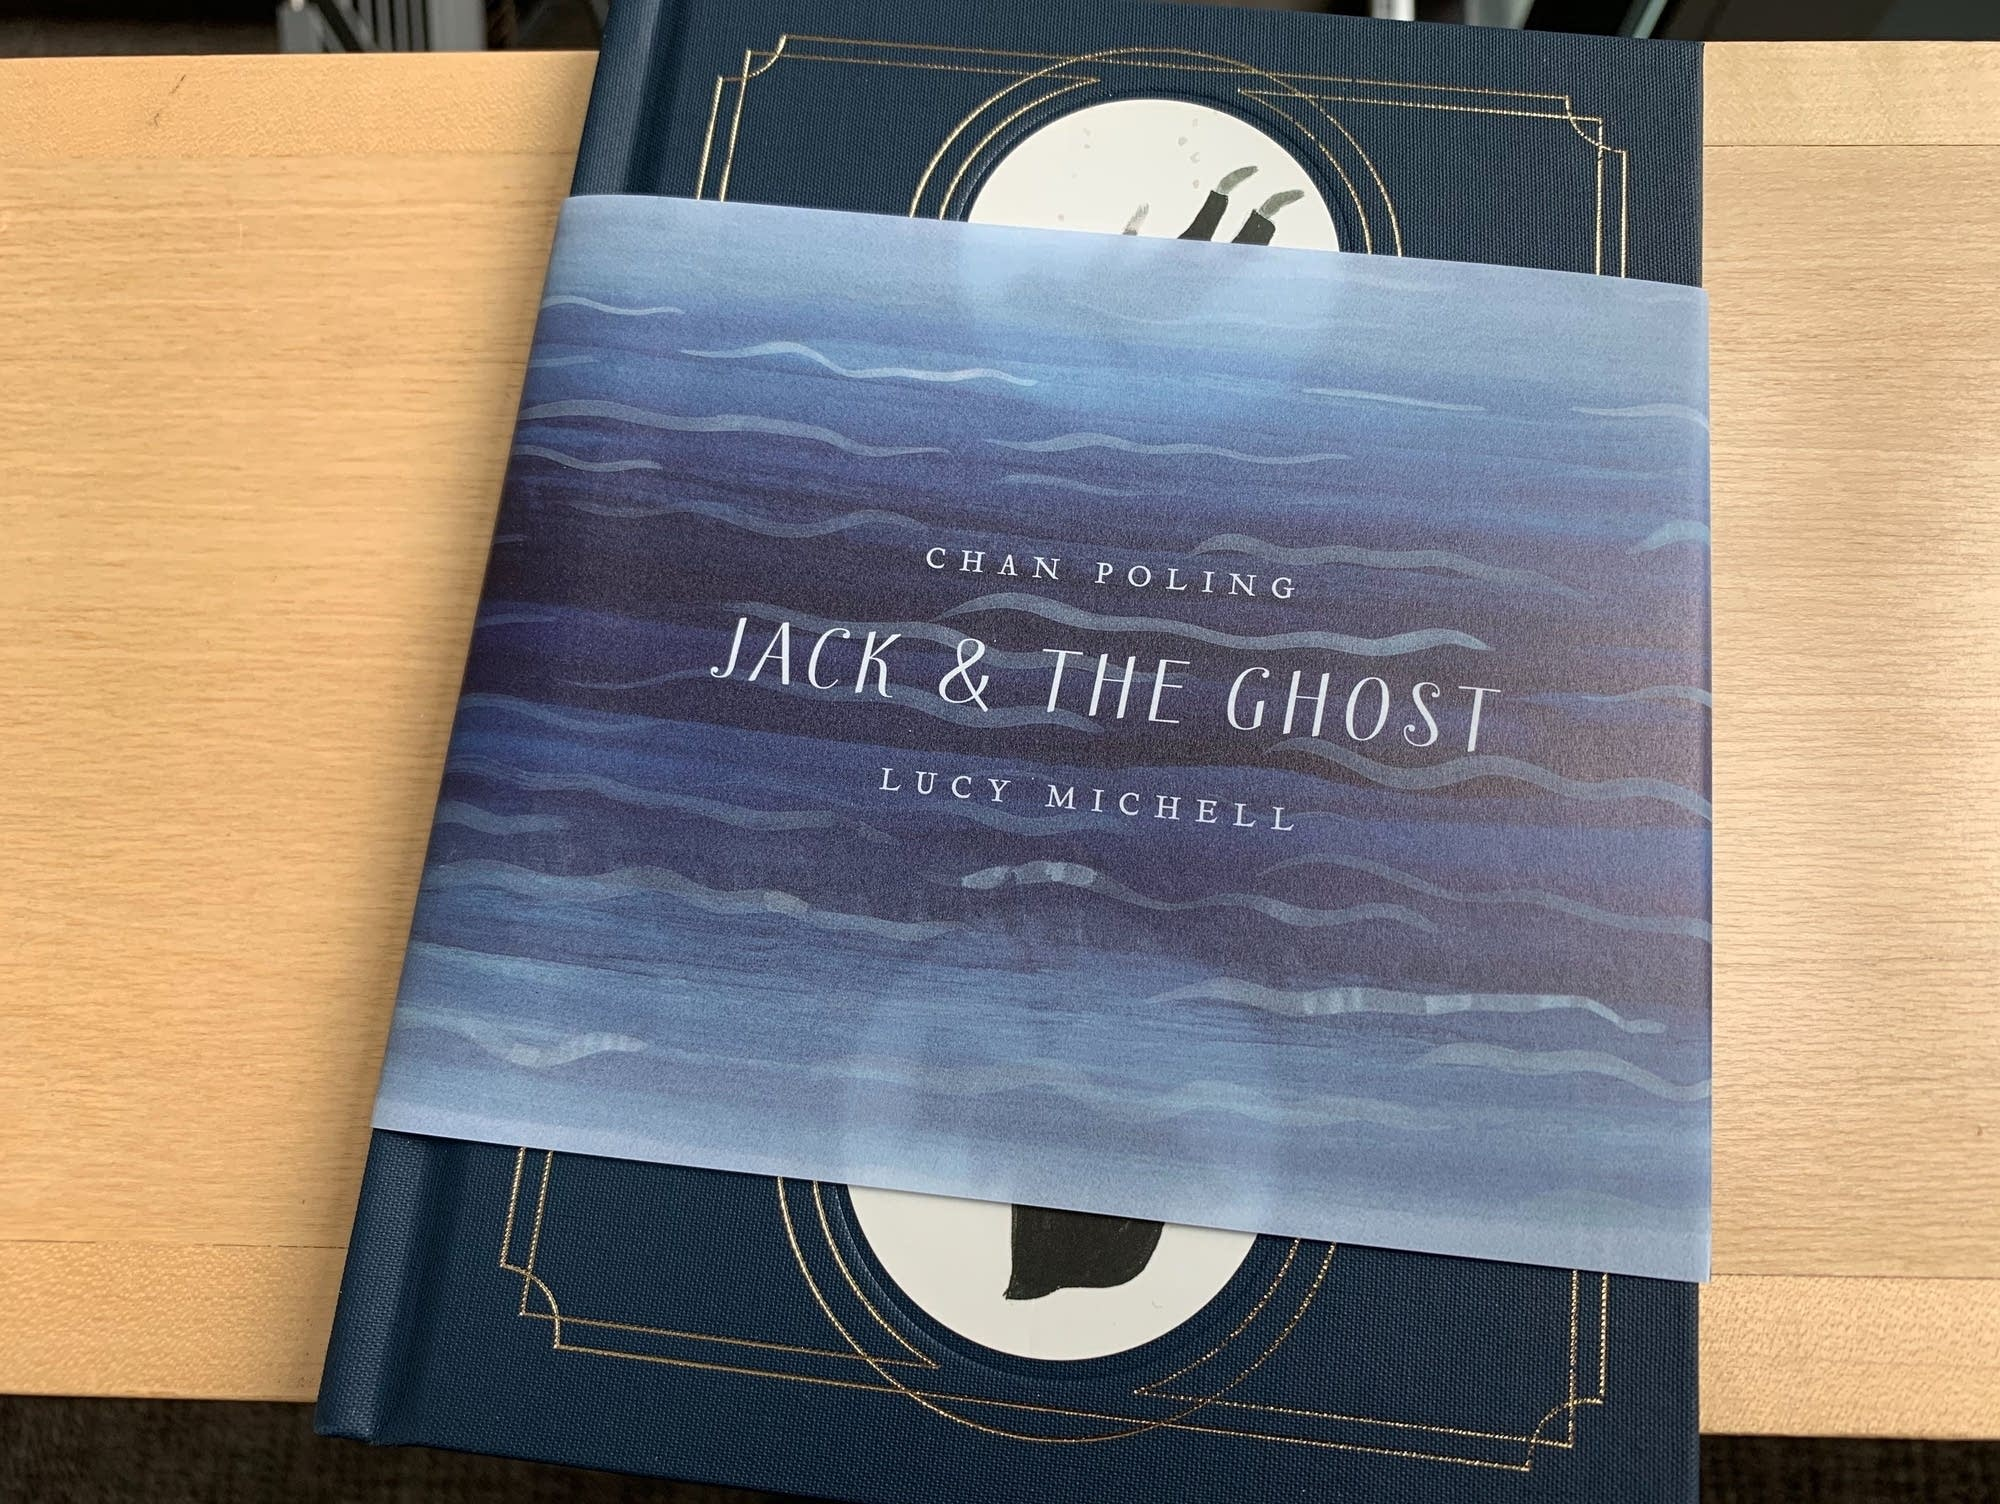 'Jack & the Ghost,' a book by Chan Poling and Lucy Michell.